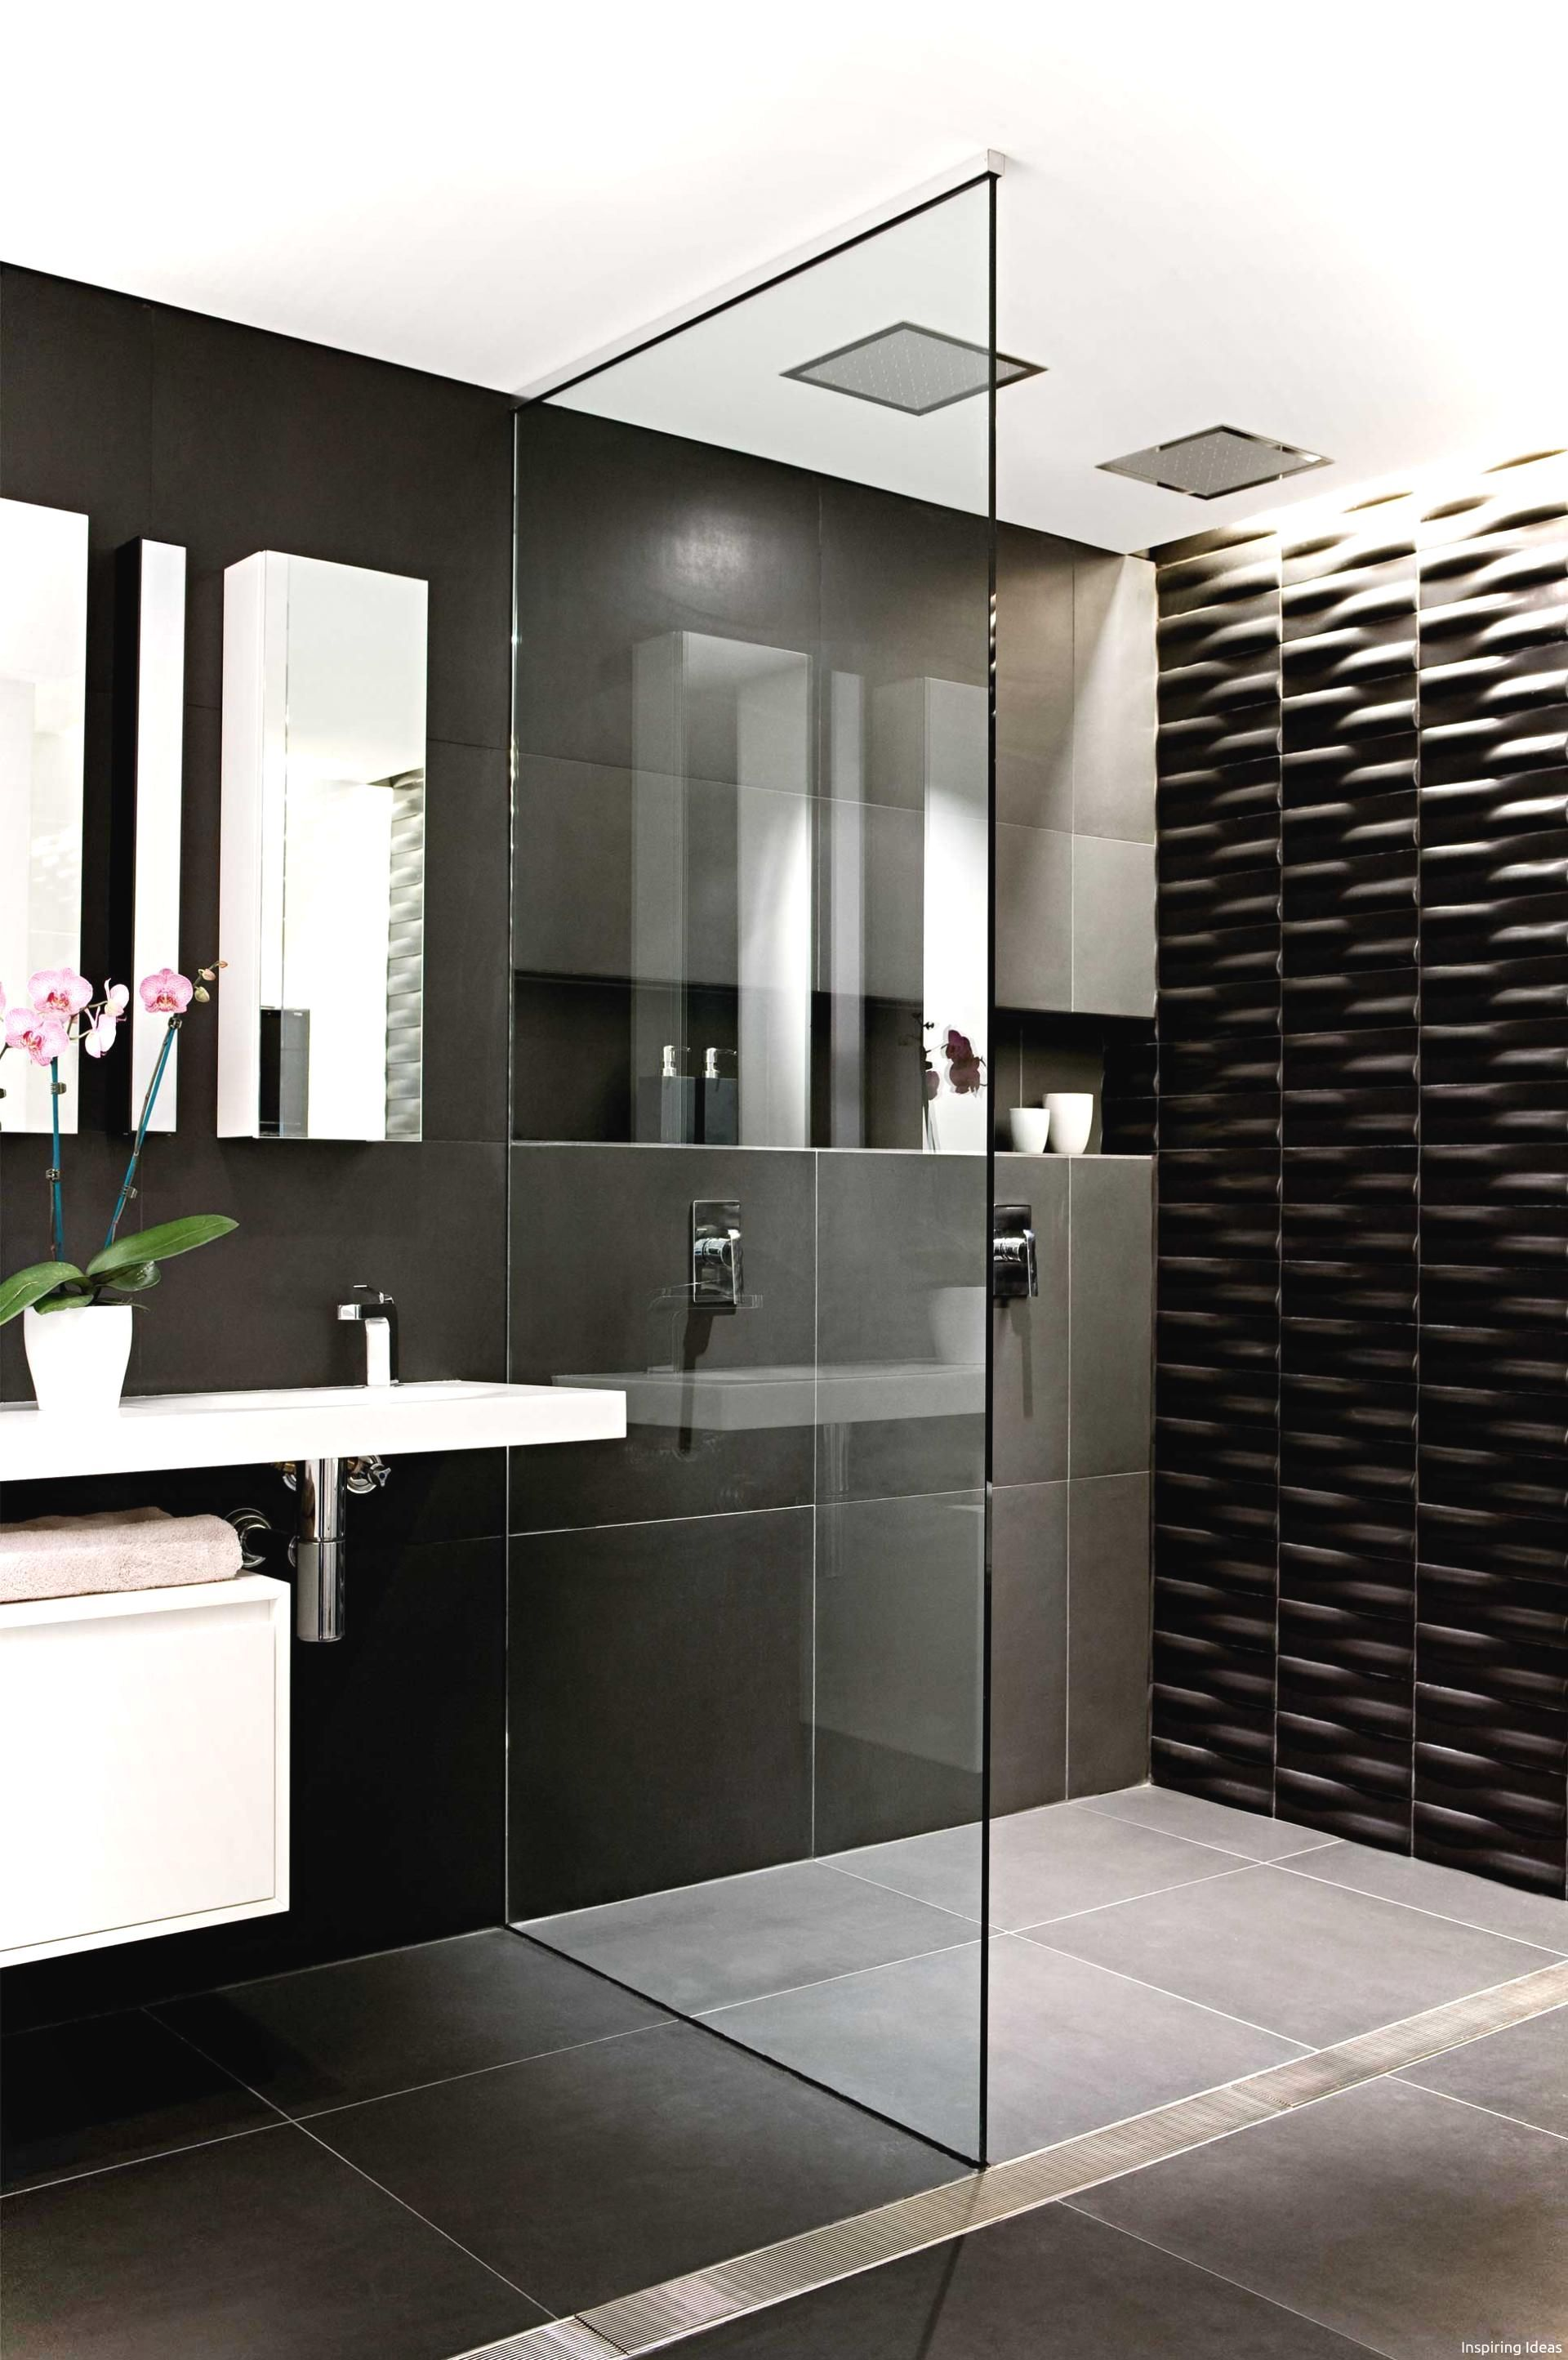 99 Luxury Black And White Bathroom Ideas White Bathroom Decor Black Bathroom Black White Bathrooms